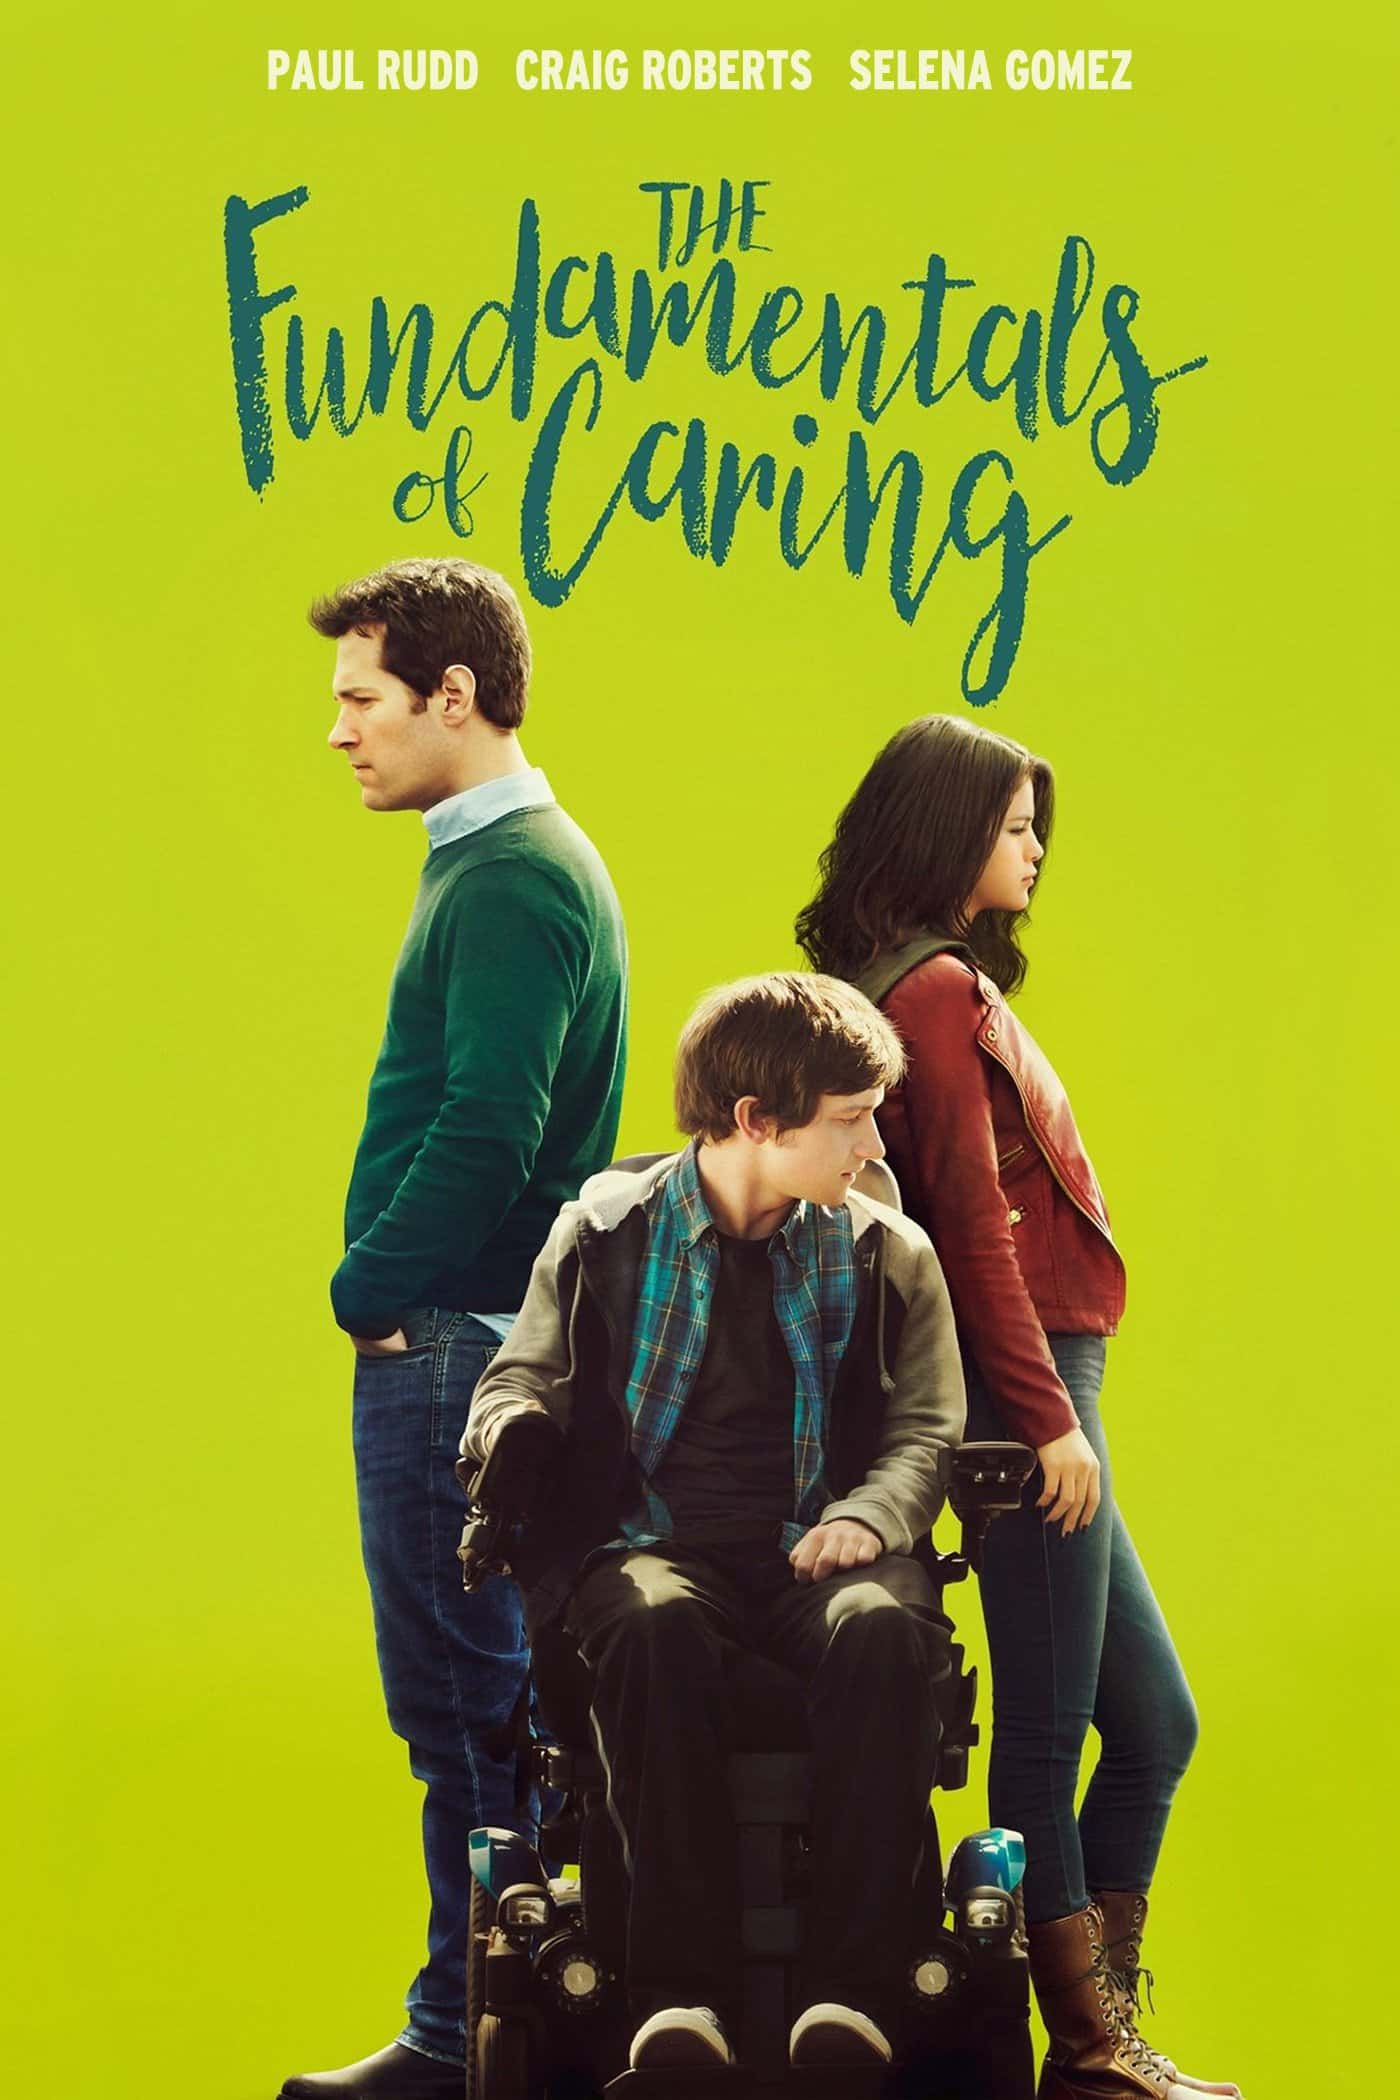 The Fundamentals of Caring, 2016